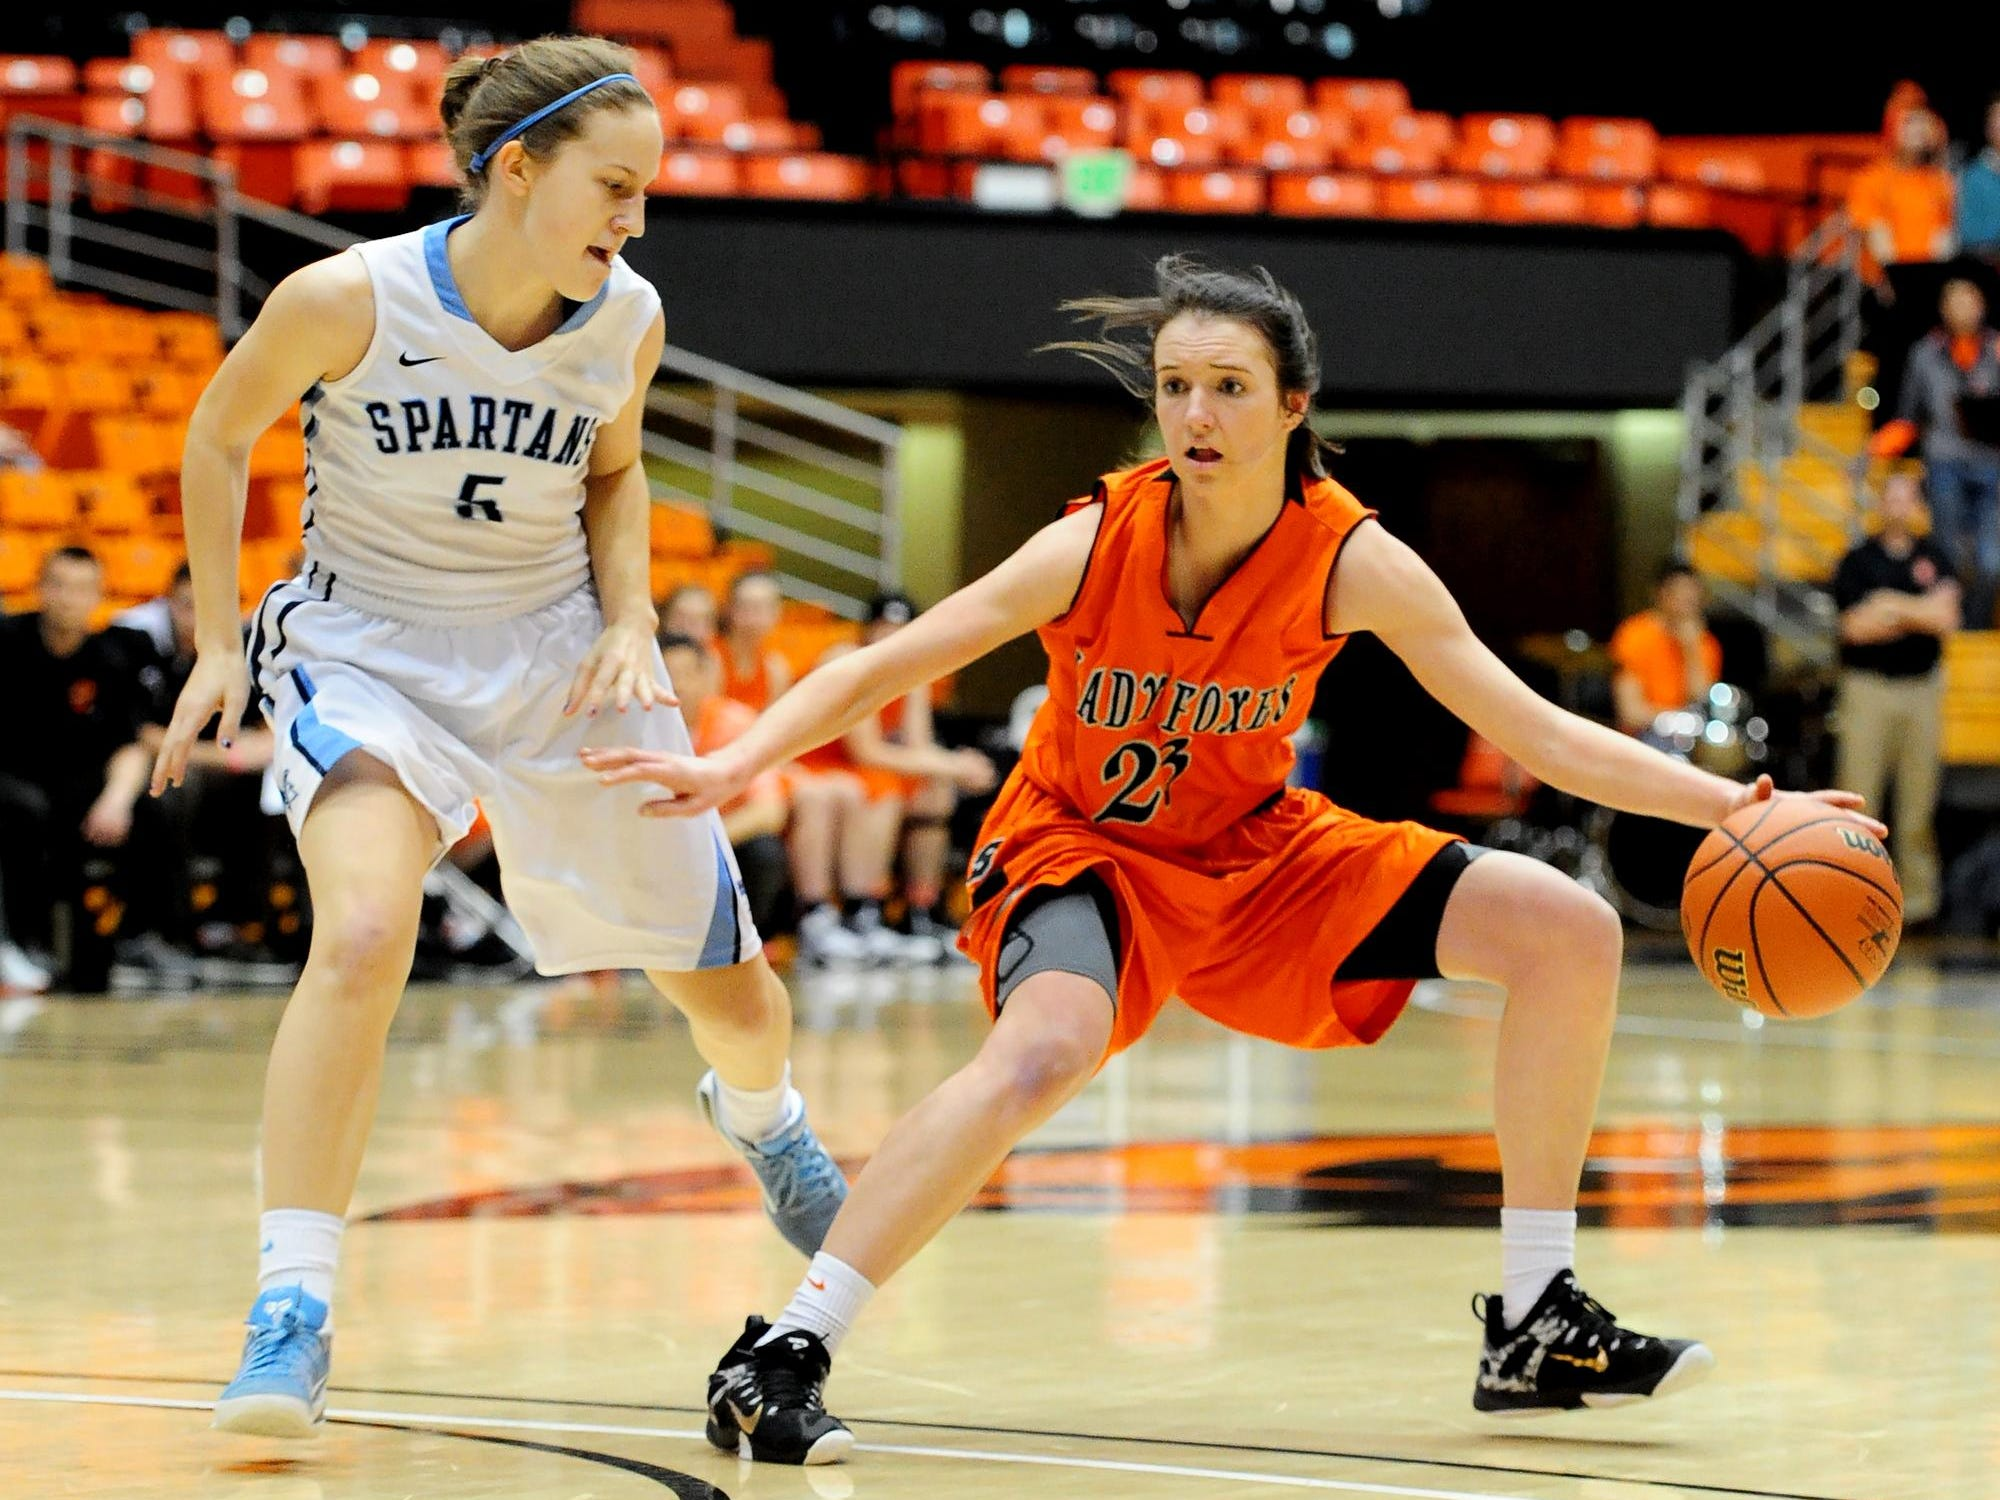 Silverton's Alia Parsons controls the ball as Corvallis post Stephanie Vallancey-Martinson pressures during the quarterfinals of the OSAA Class 5A state basketball tournament at Gill Coliseum, on Wednesday, March 11, 2015, in Corvallis. Silverton loses to Corvallis 41-40.